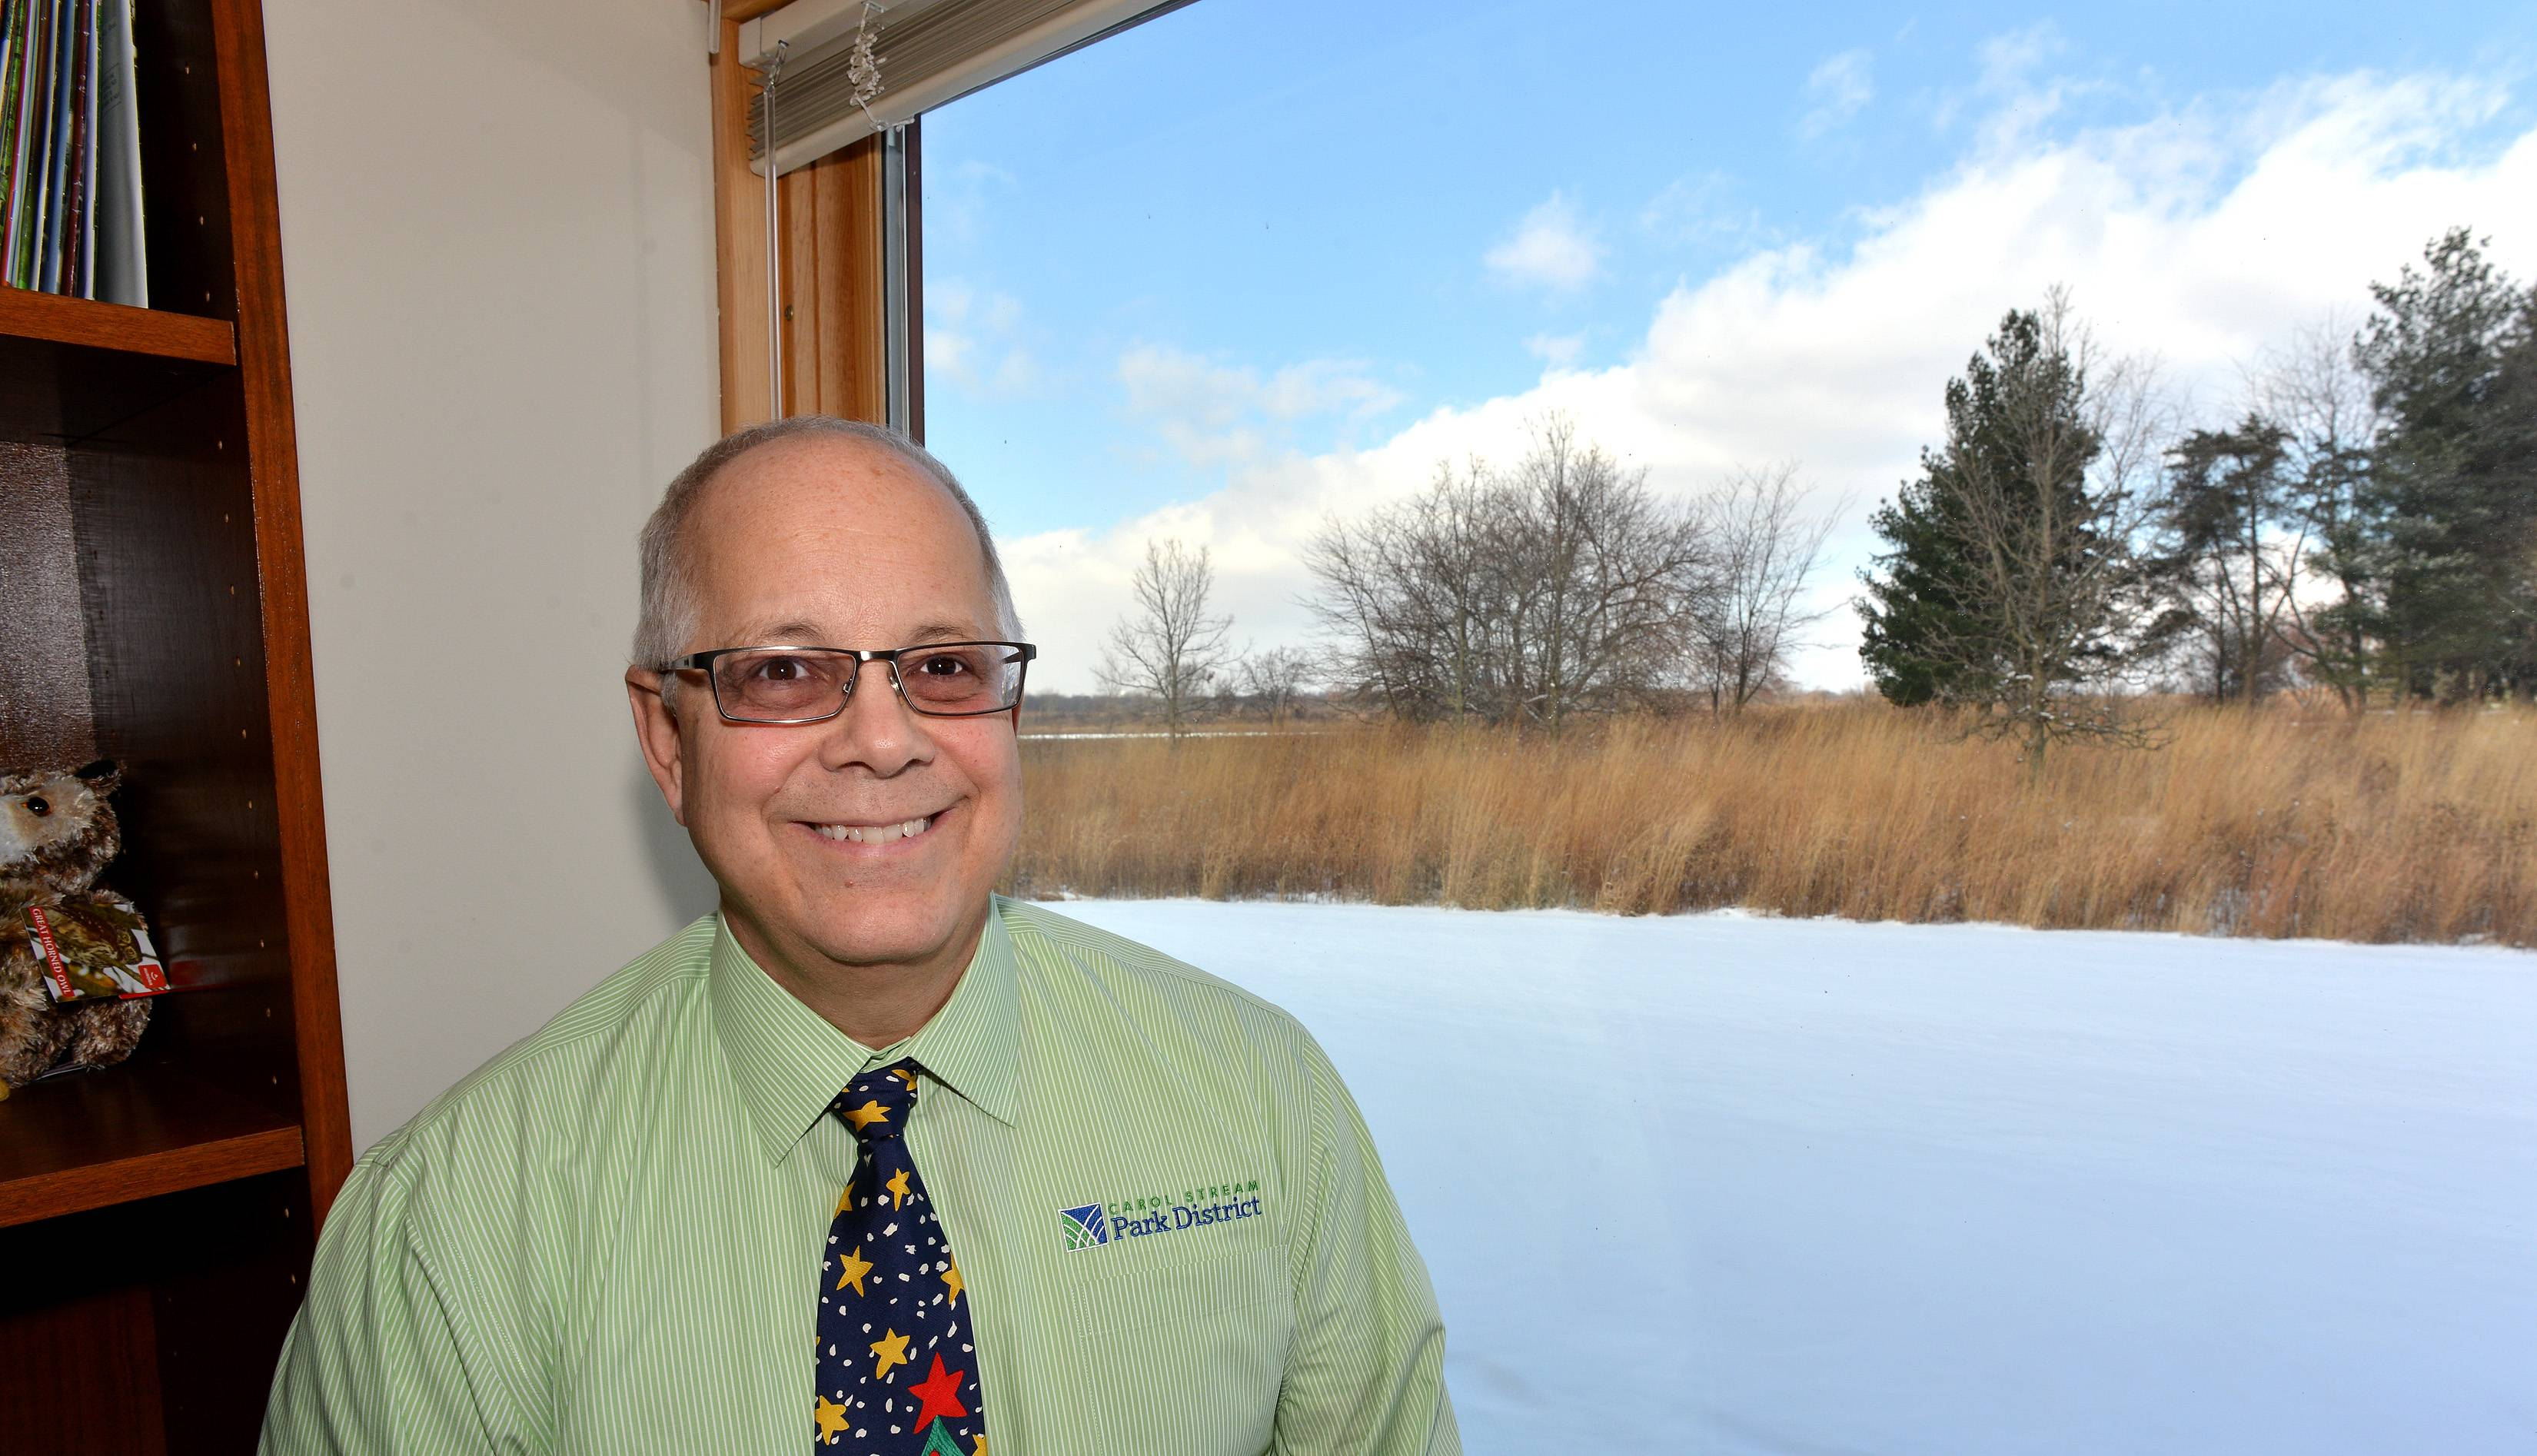 The executive director of the DuPage Forest Preserve District, Arnie Biondo, is taking early retirement just seven months after beginning work with the district.